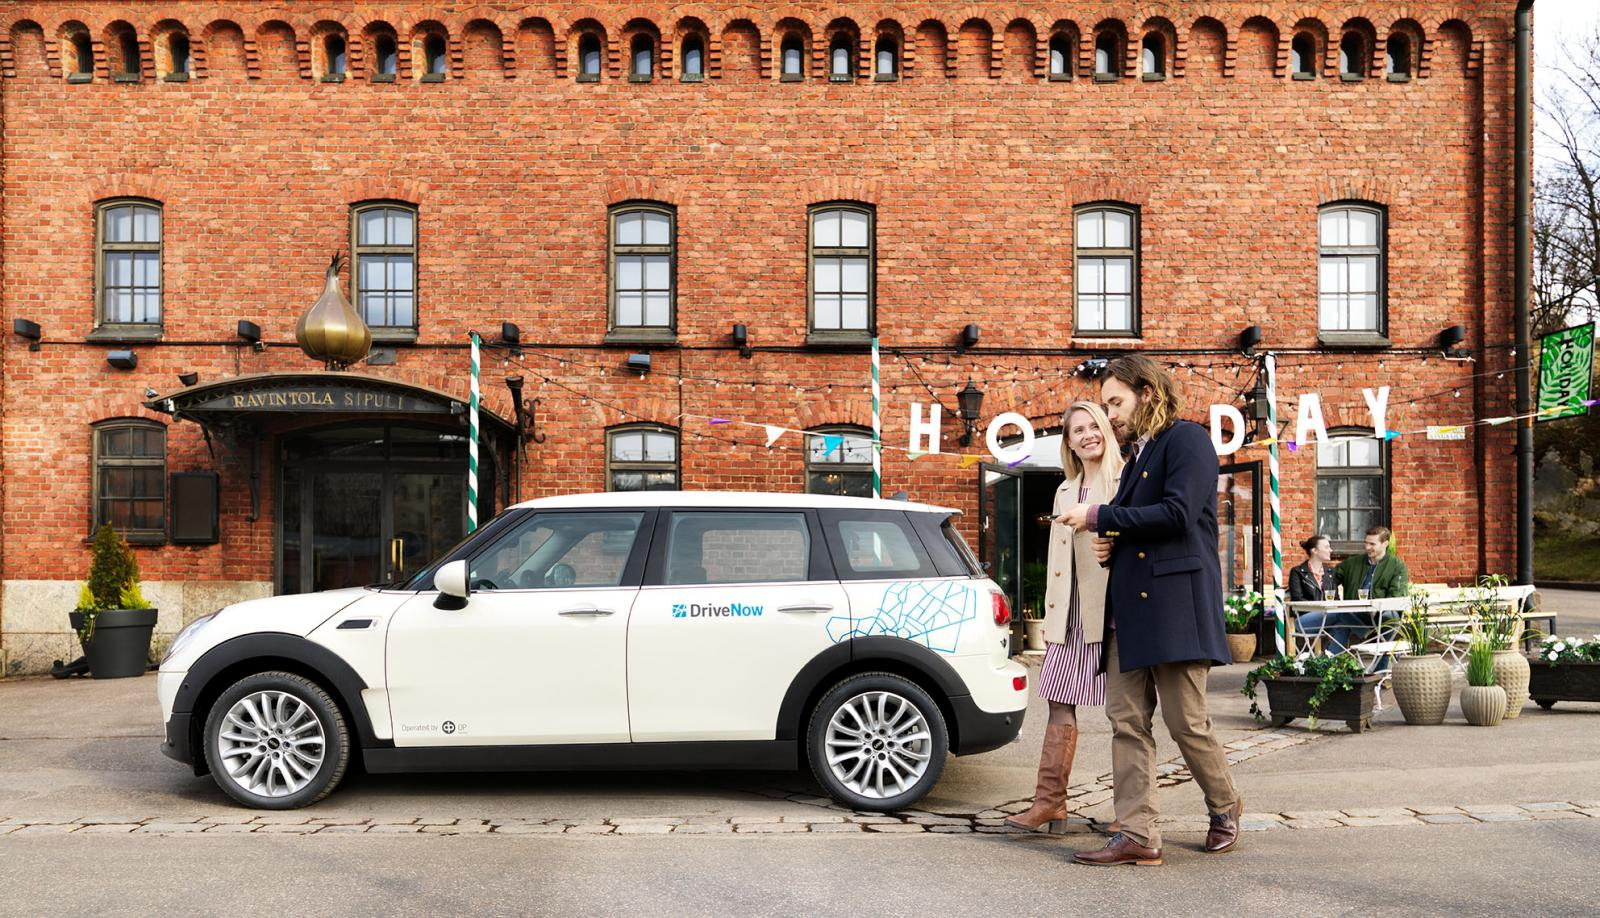 DriveNow_carsharing_helsinki_how_it_works